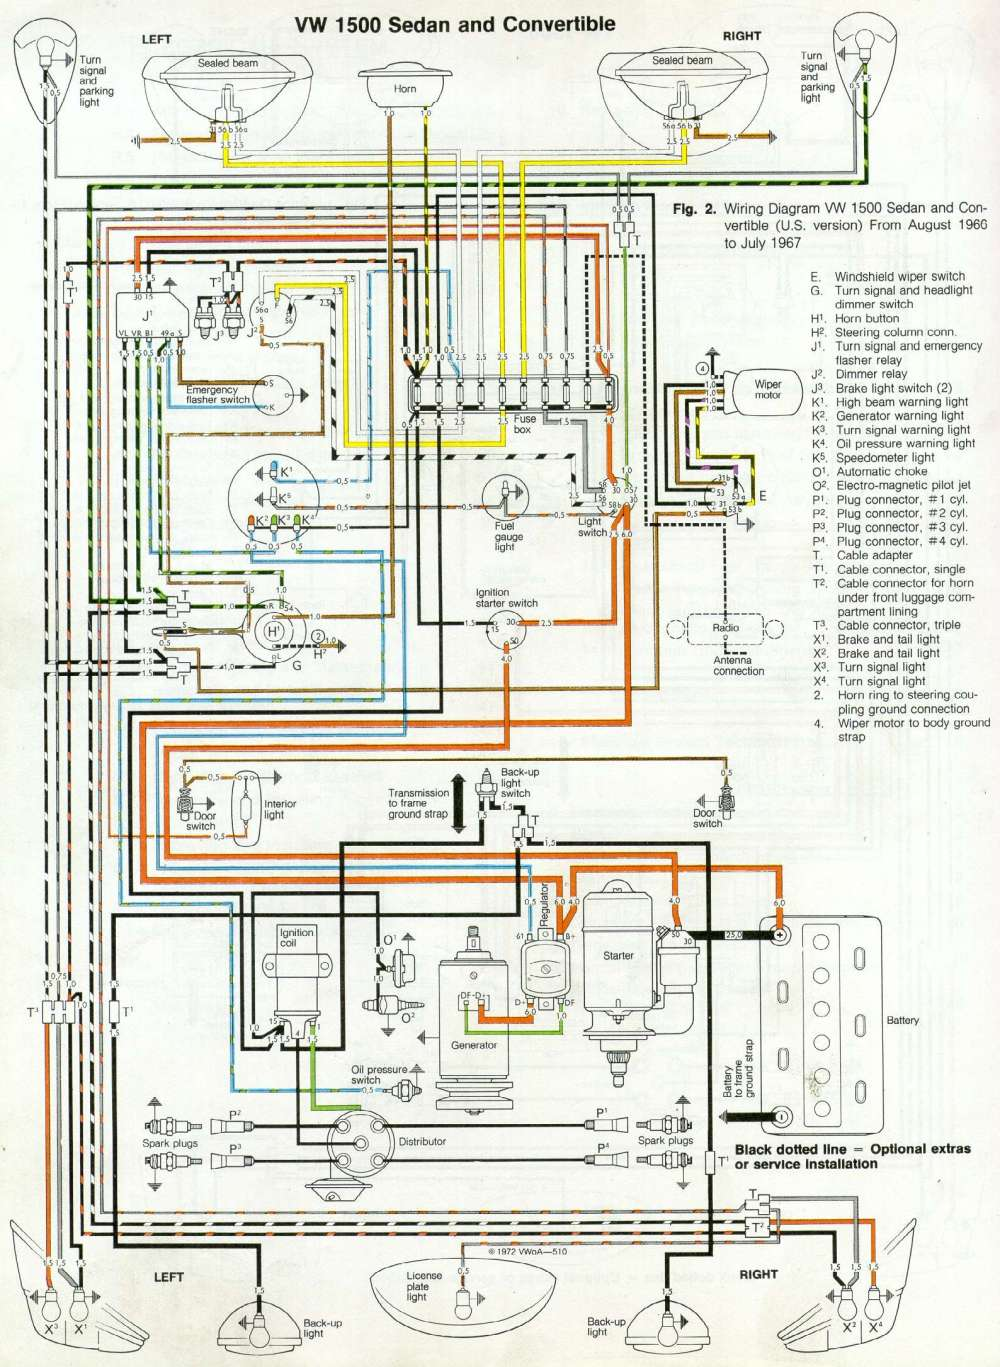 medium resolution of thesamba com type 1 wiring diagrams rh thesamba com 1964 vw beetle wiring diagram 1974 vw